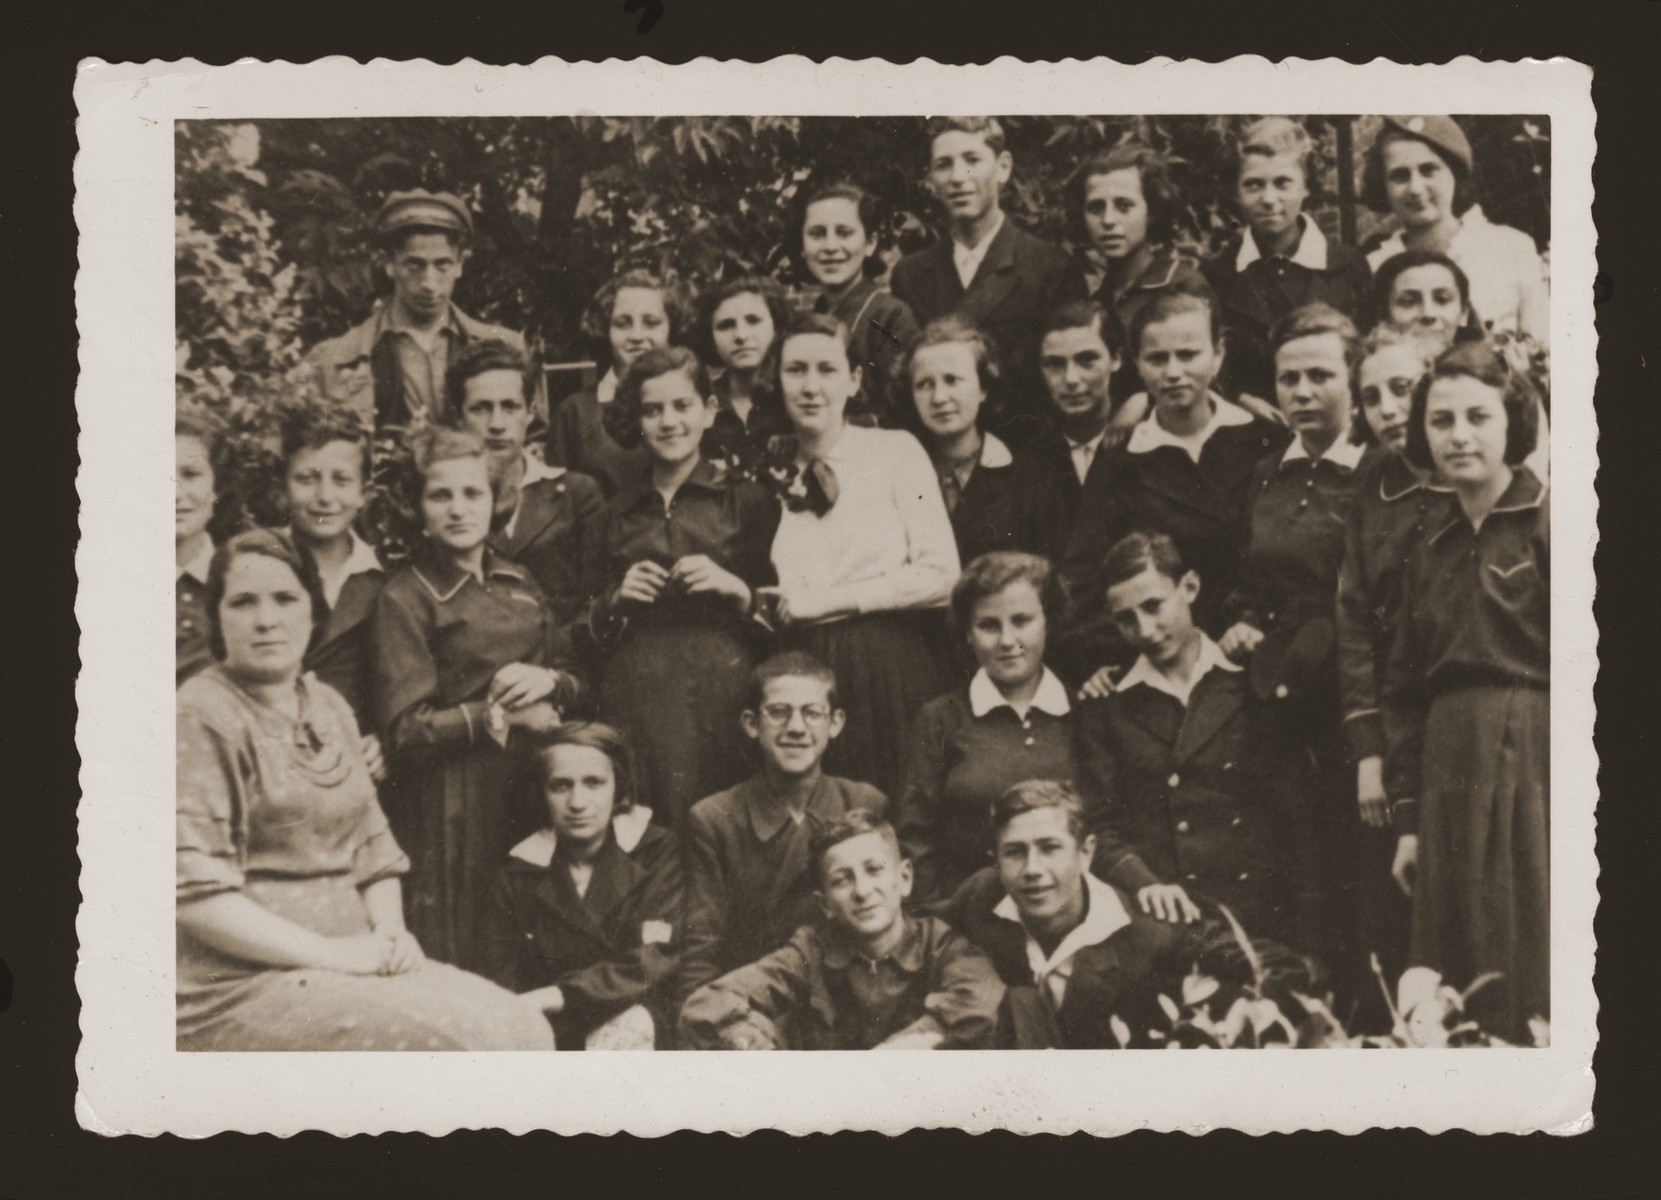 Group portrait of students from the Jewish gymnasium in Zamosc, Poland.  Irene Wechter is pictured is standing in the right front.